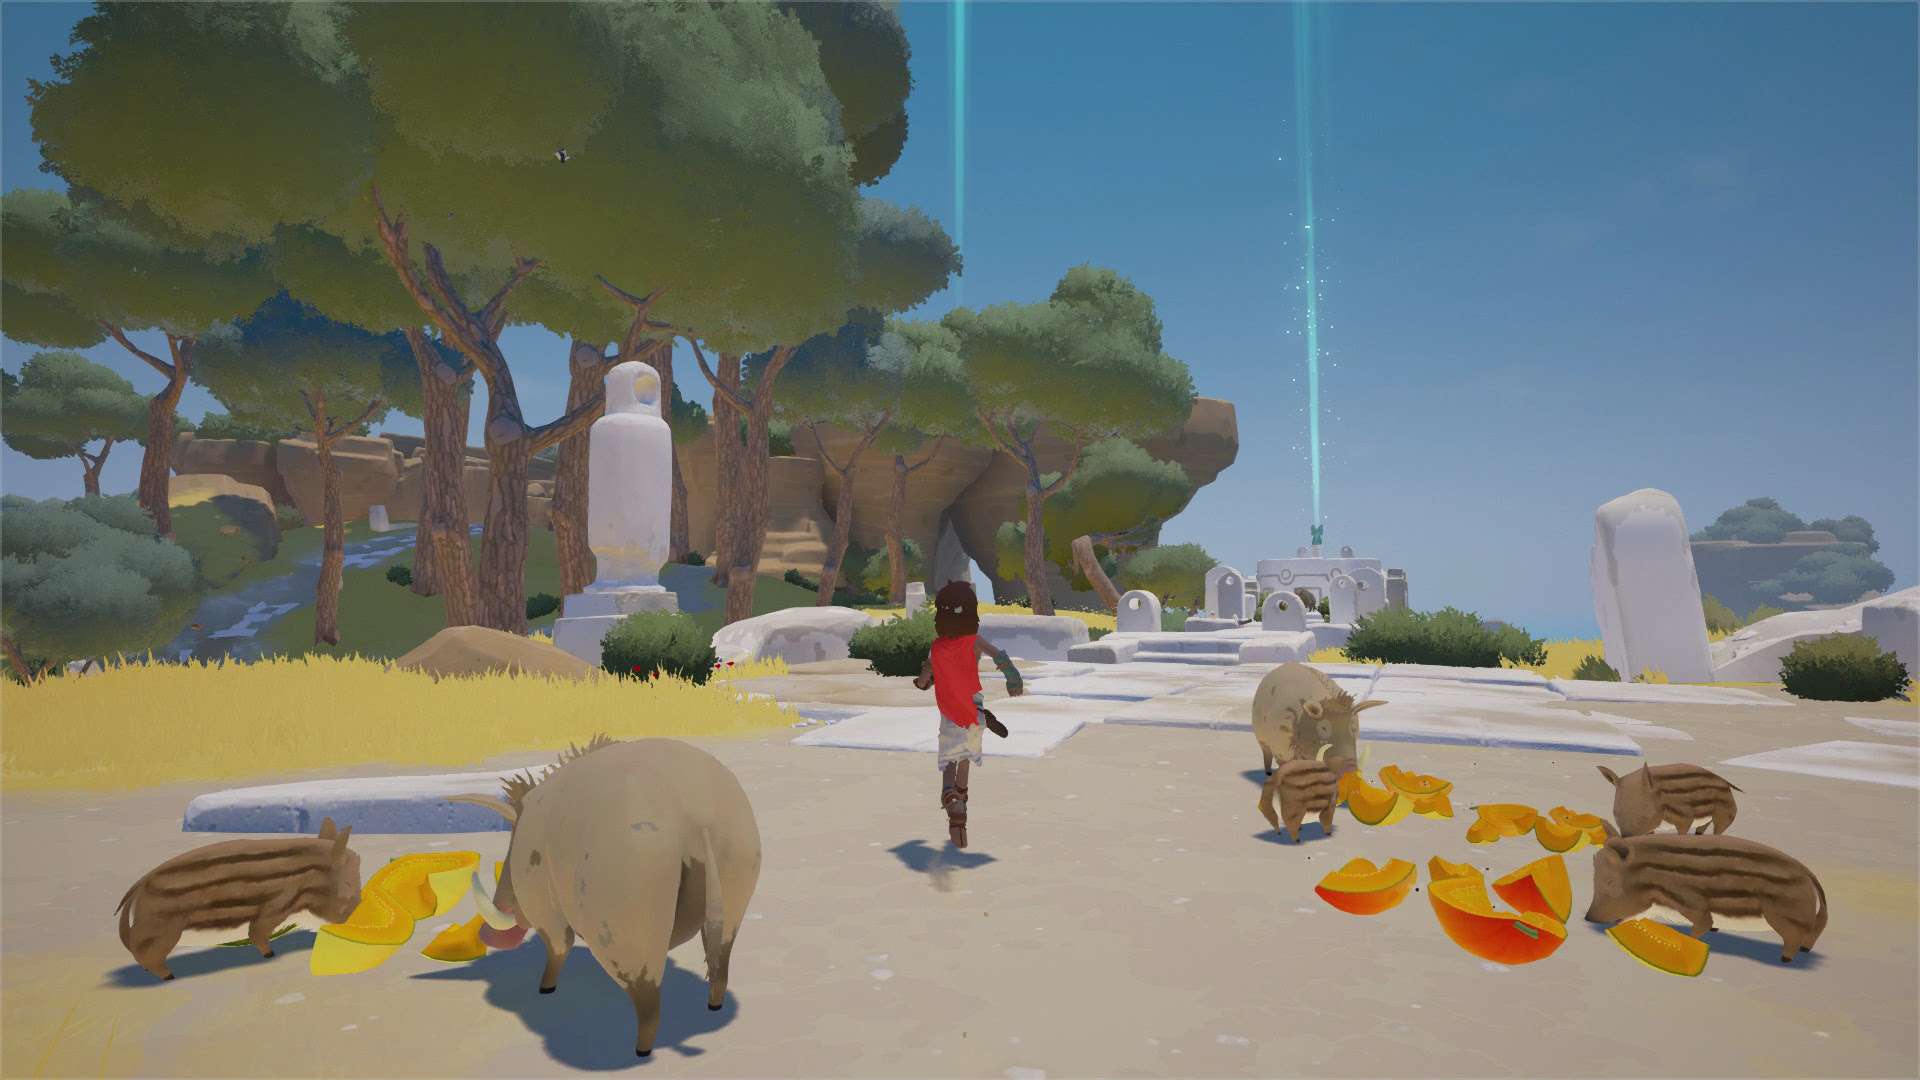 Rime follows Minecraft as latest Switch game that runs at 720p on both tablet and TV screenshot